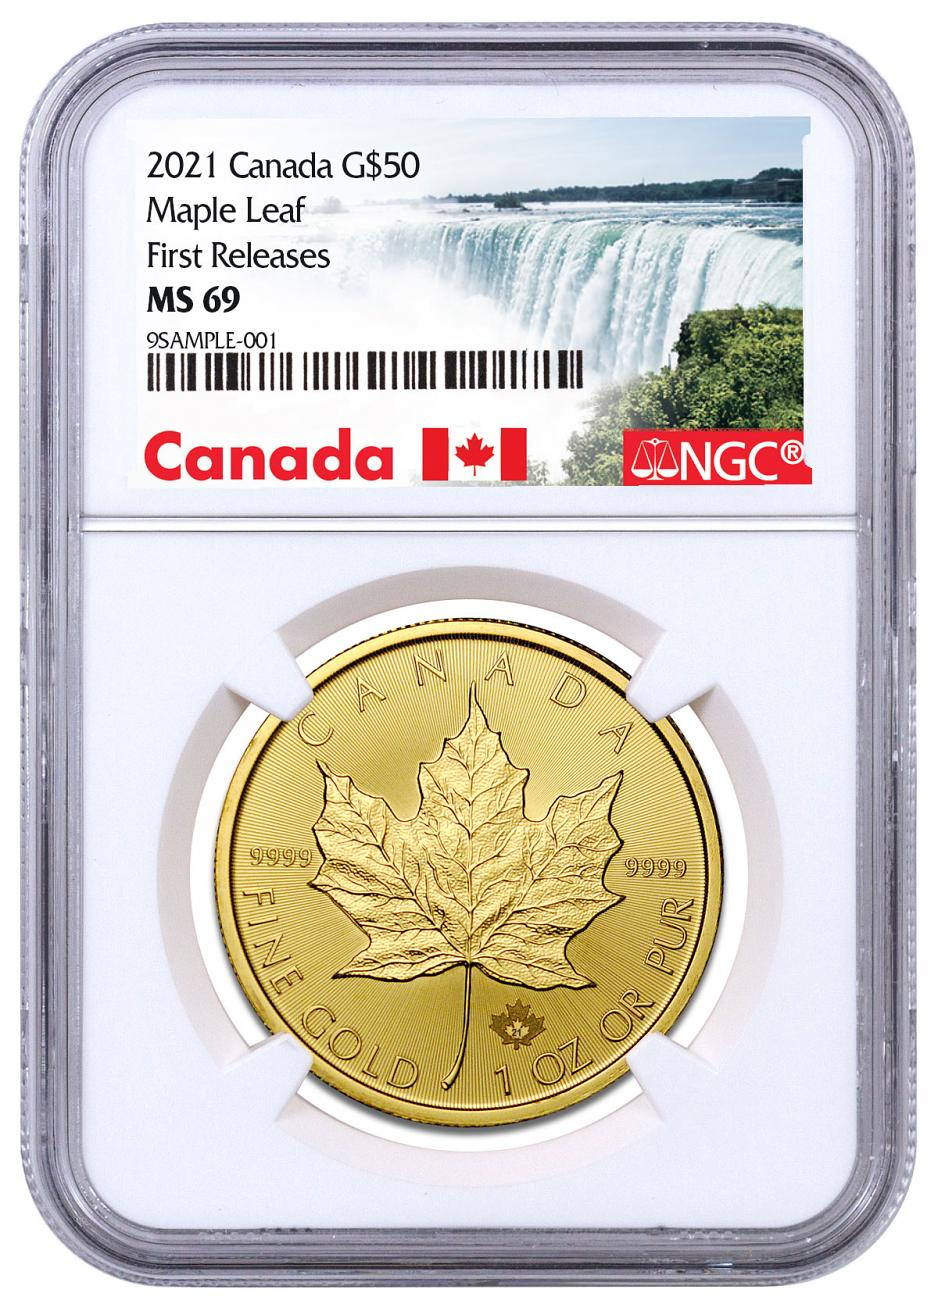 2021 Canada 1 oz Gold Maple Leaf $50 Coin NGC MS69 FR Exclusive Canada Label